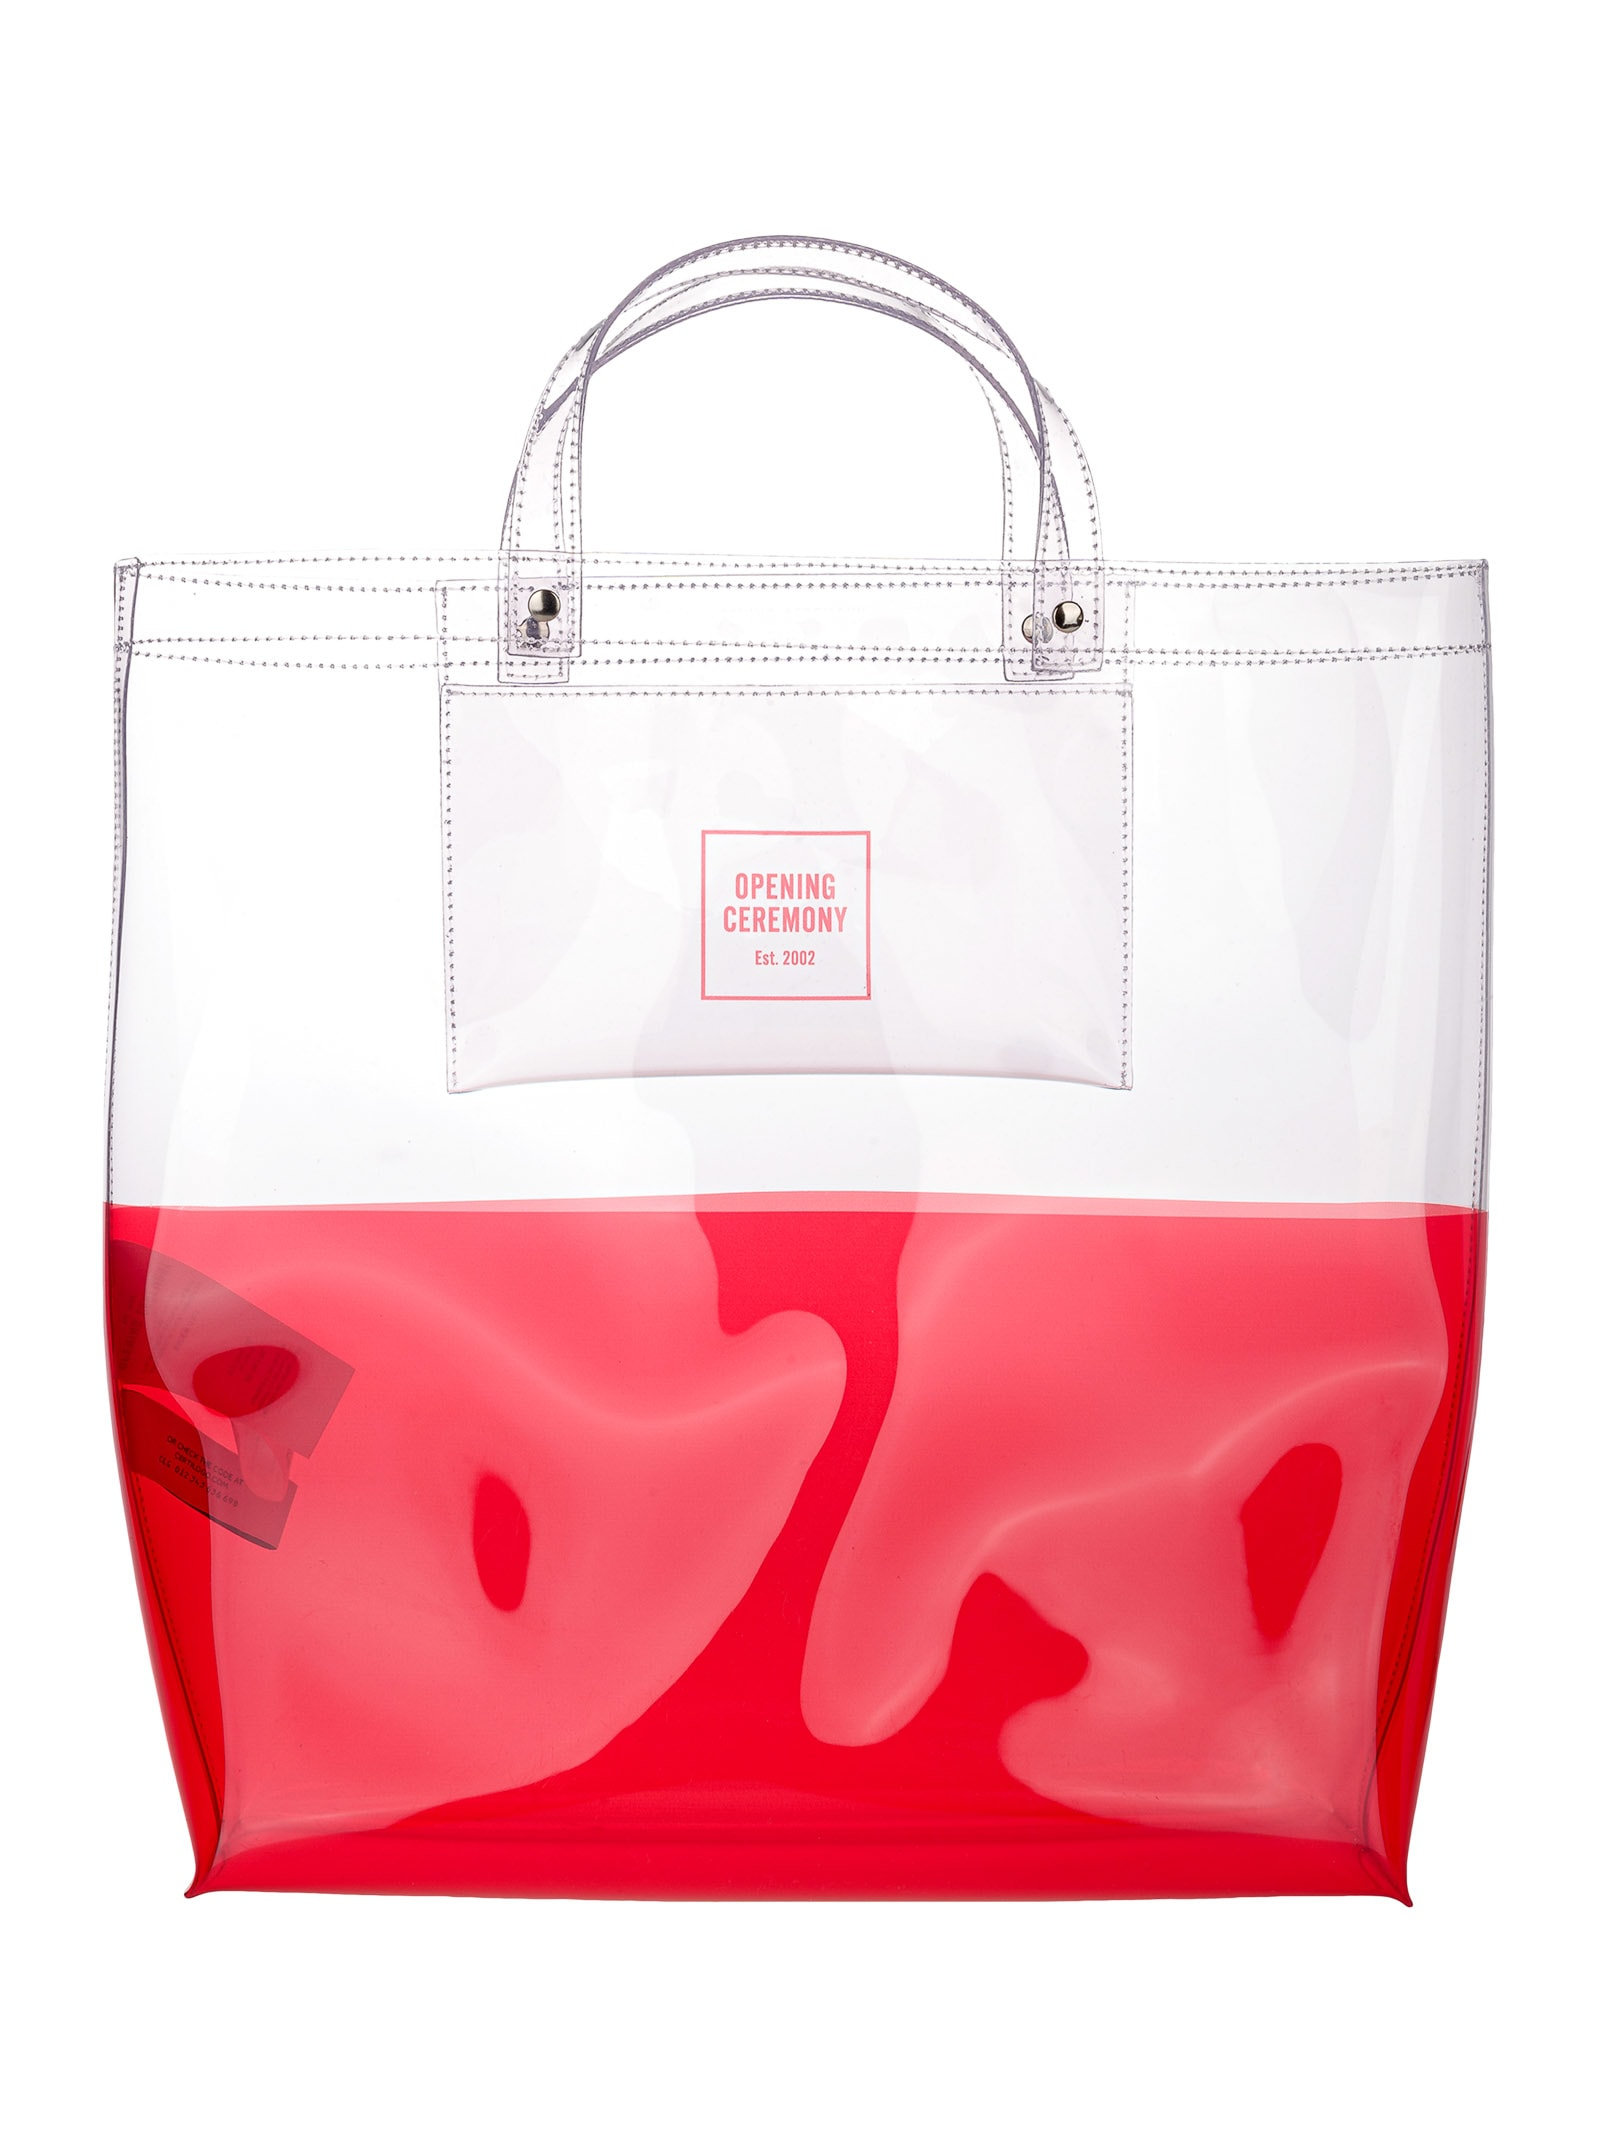 Opening Ceremony PANELLED BOX-LOGO LARGE TOTE BAG